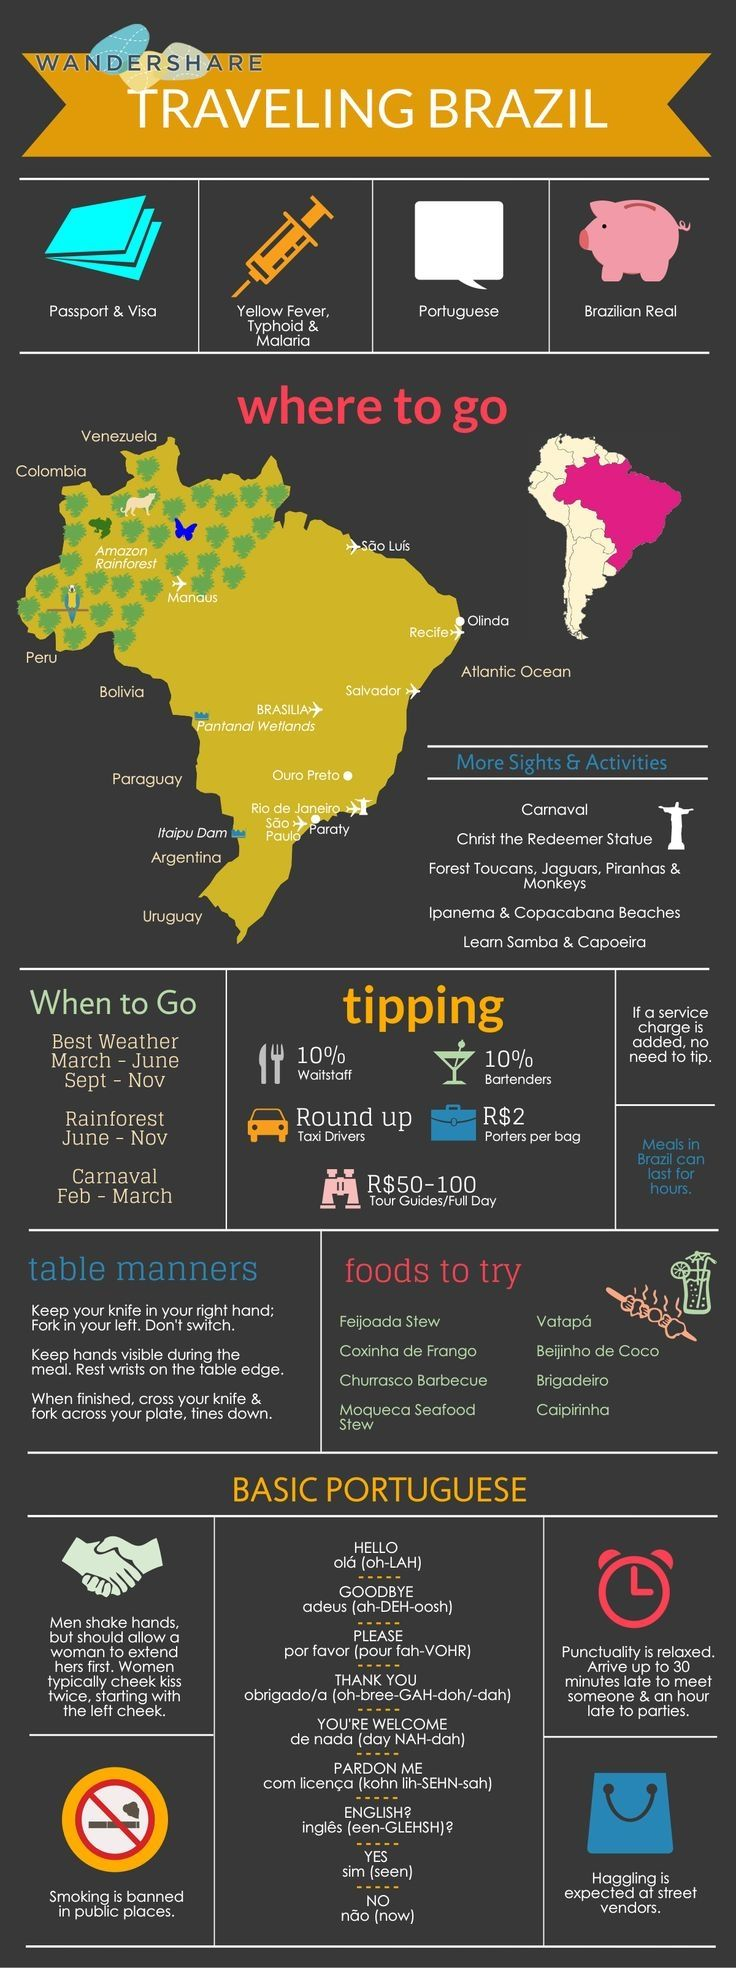 Quick facts, tips, and info for your trip to brazil